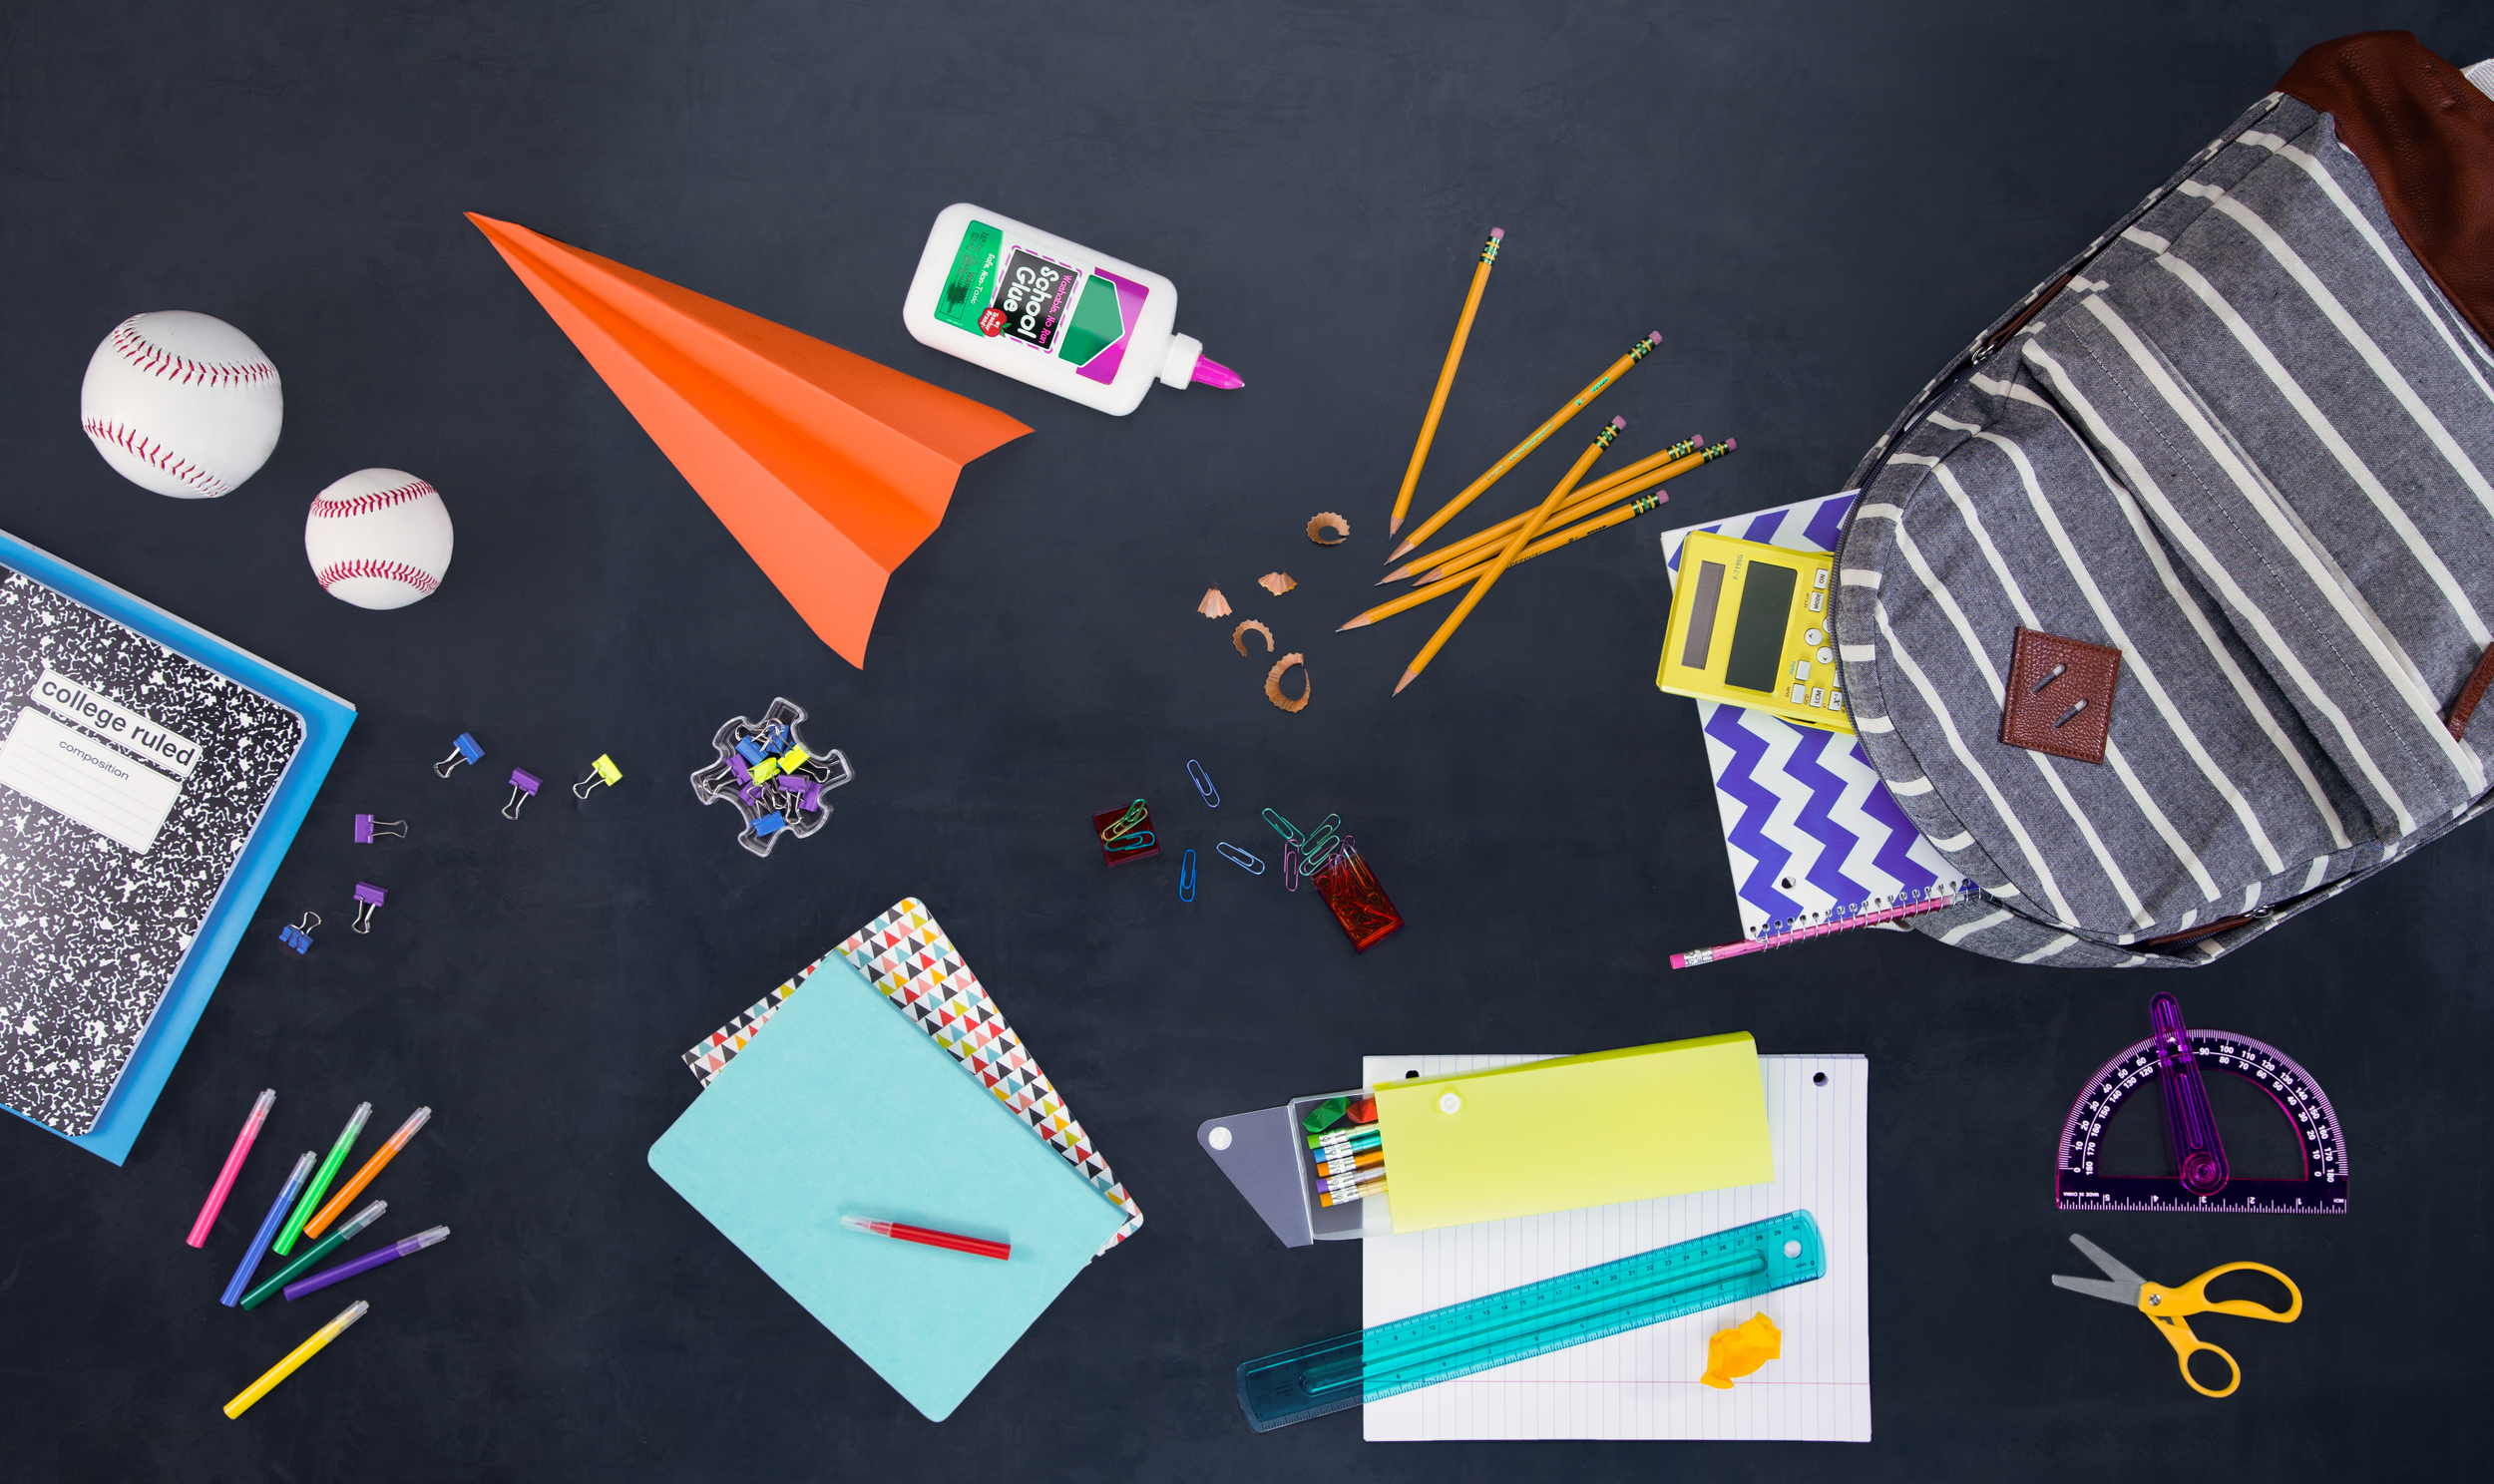 Google Express Back to School